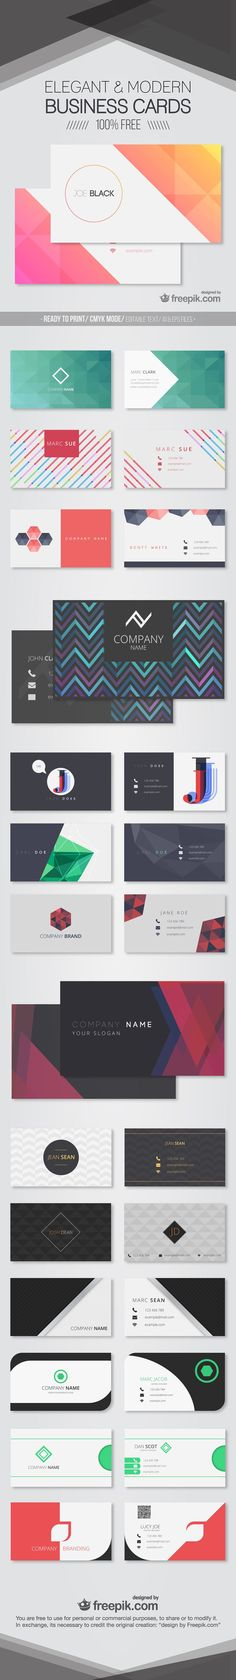 Elegant & Modern Business Card Template